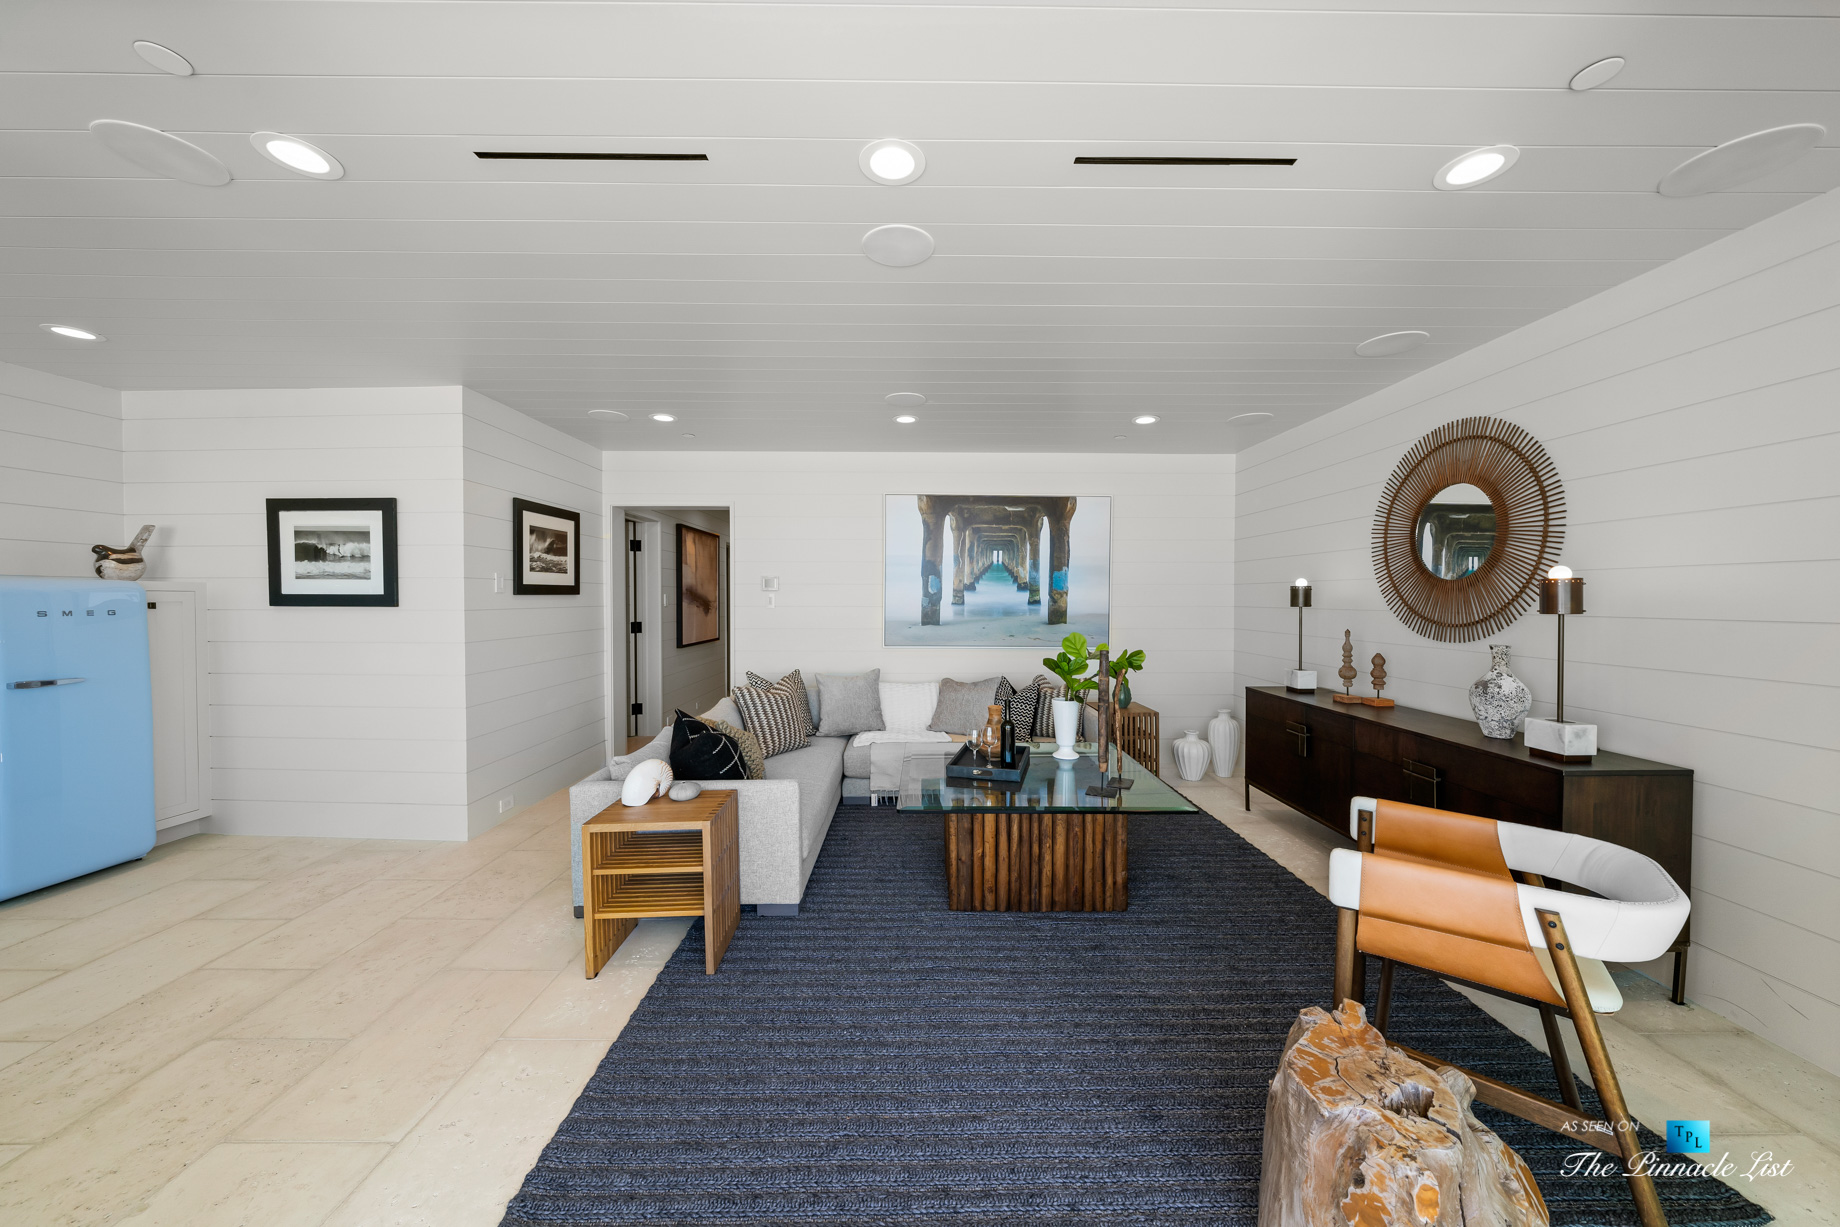 508 The Strand, Manhattan Beach, CA, USA – Lower Level Living Room – Luxury Real Estate – Oceanfront Home